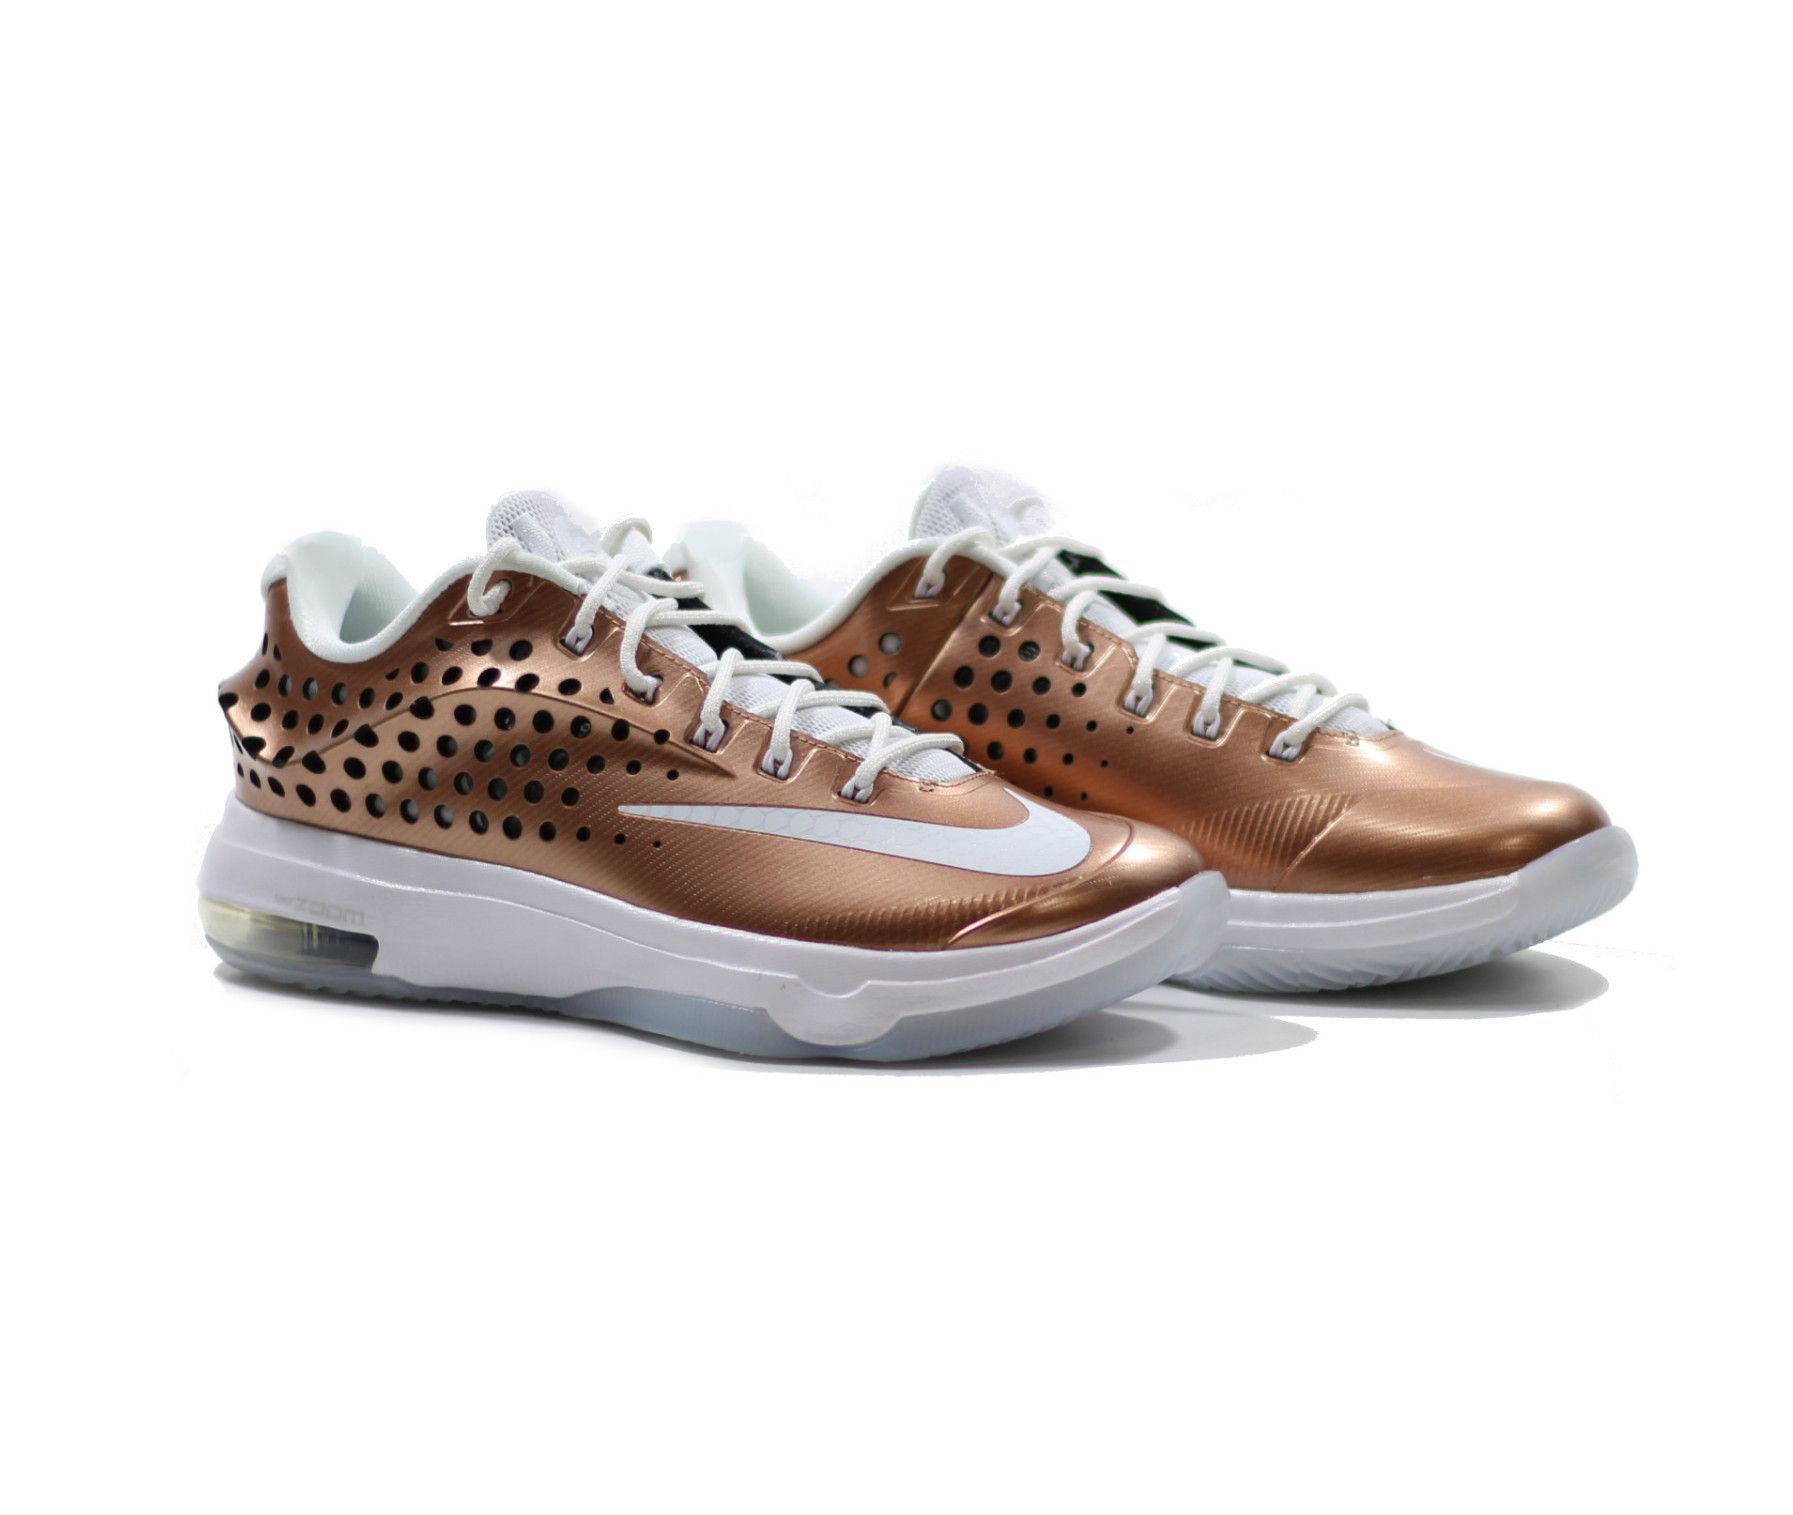 3b8c11fbad0 purchase nike kd vii elite lmtd eybl metallic red bronze white treasure  blue 3d2d0 ec490